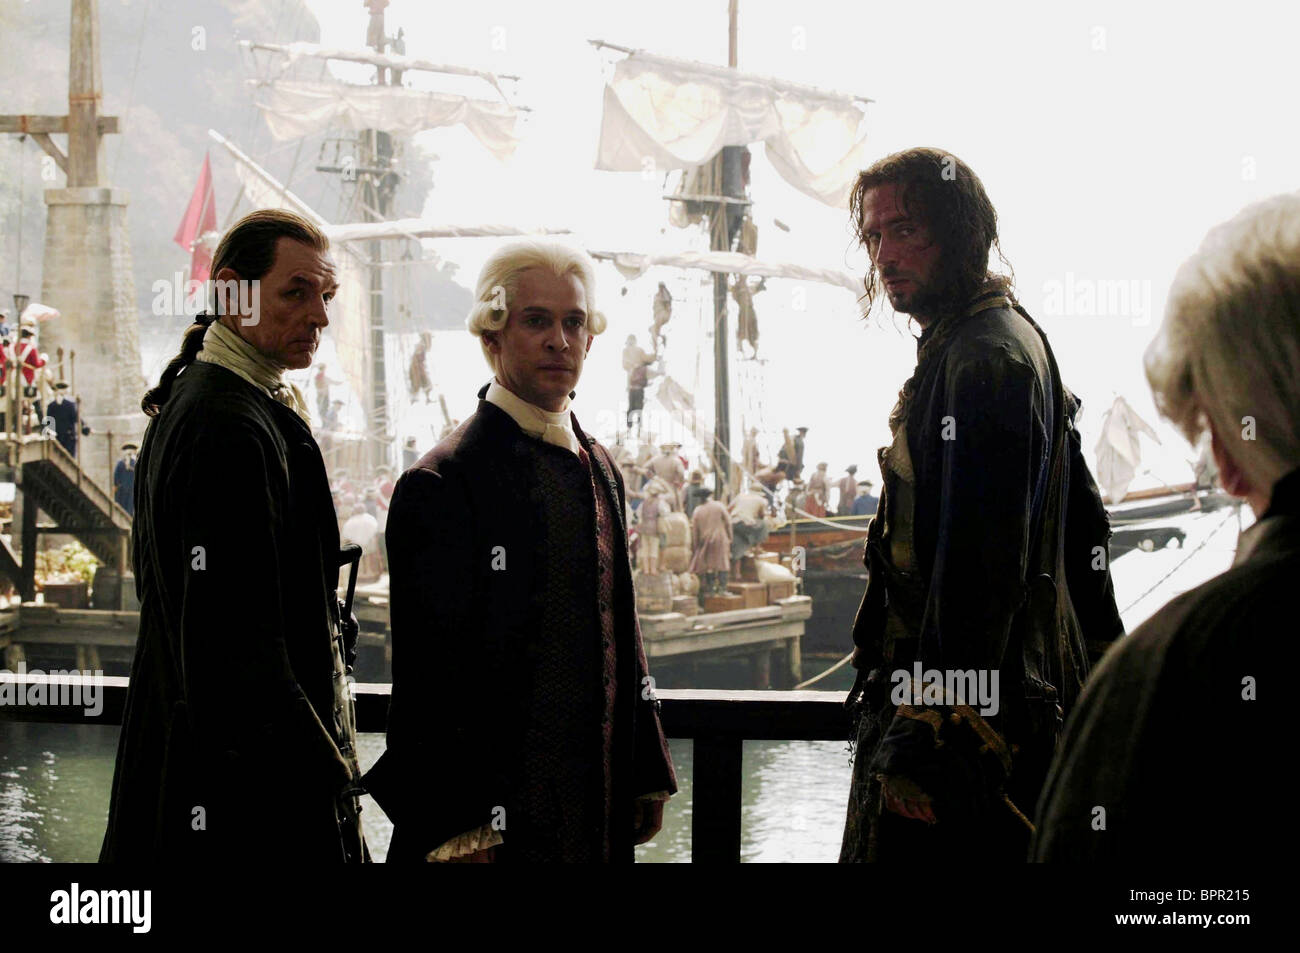 DAVID SCHOFIELD TOM HOLLANDER & JACK DAVENPORT PIRATES OF THE CARIBBEAN: DEAD MAN'S CHEST (2006) - Stock Image